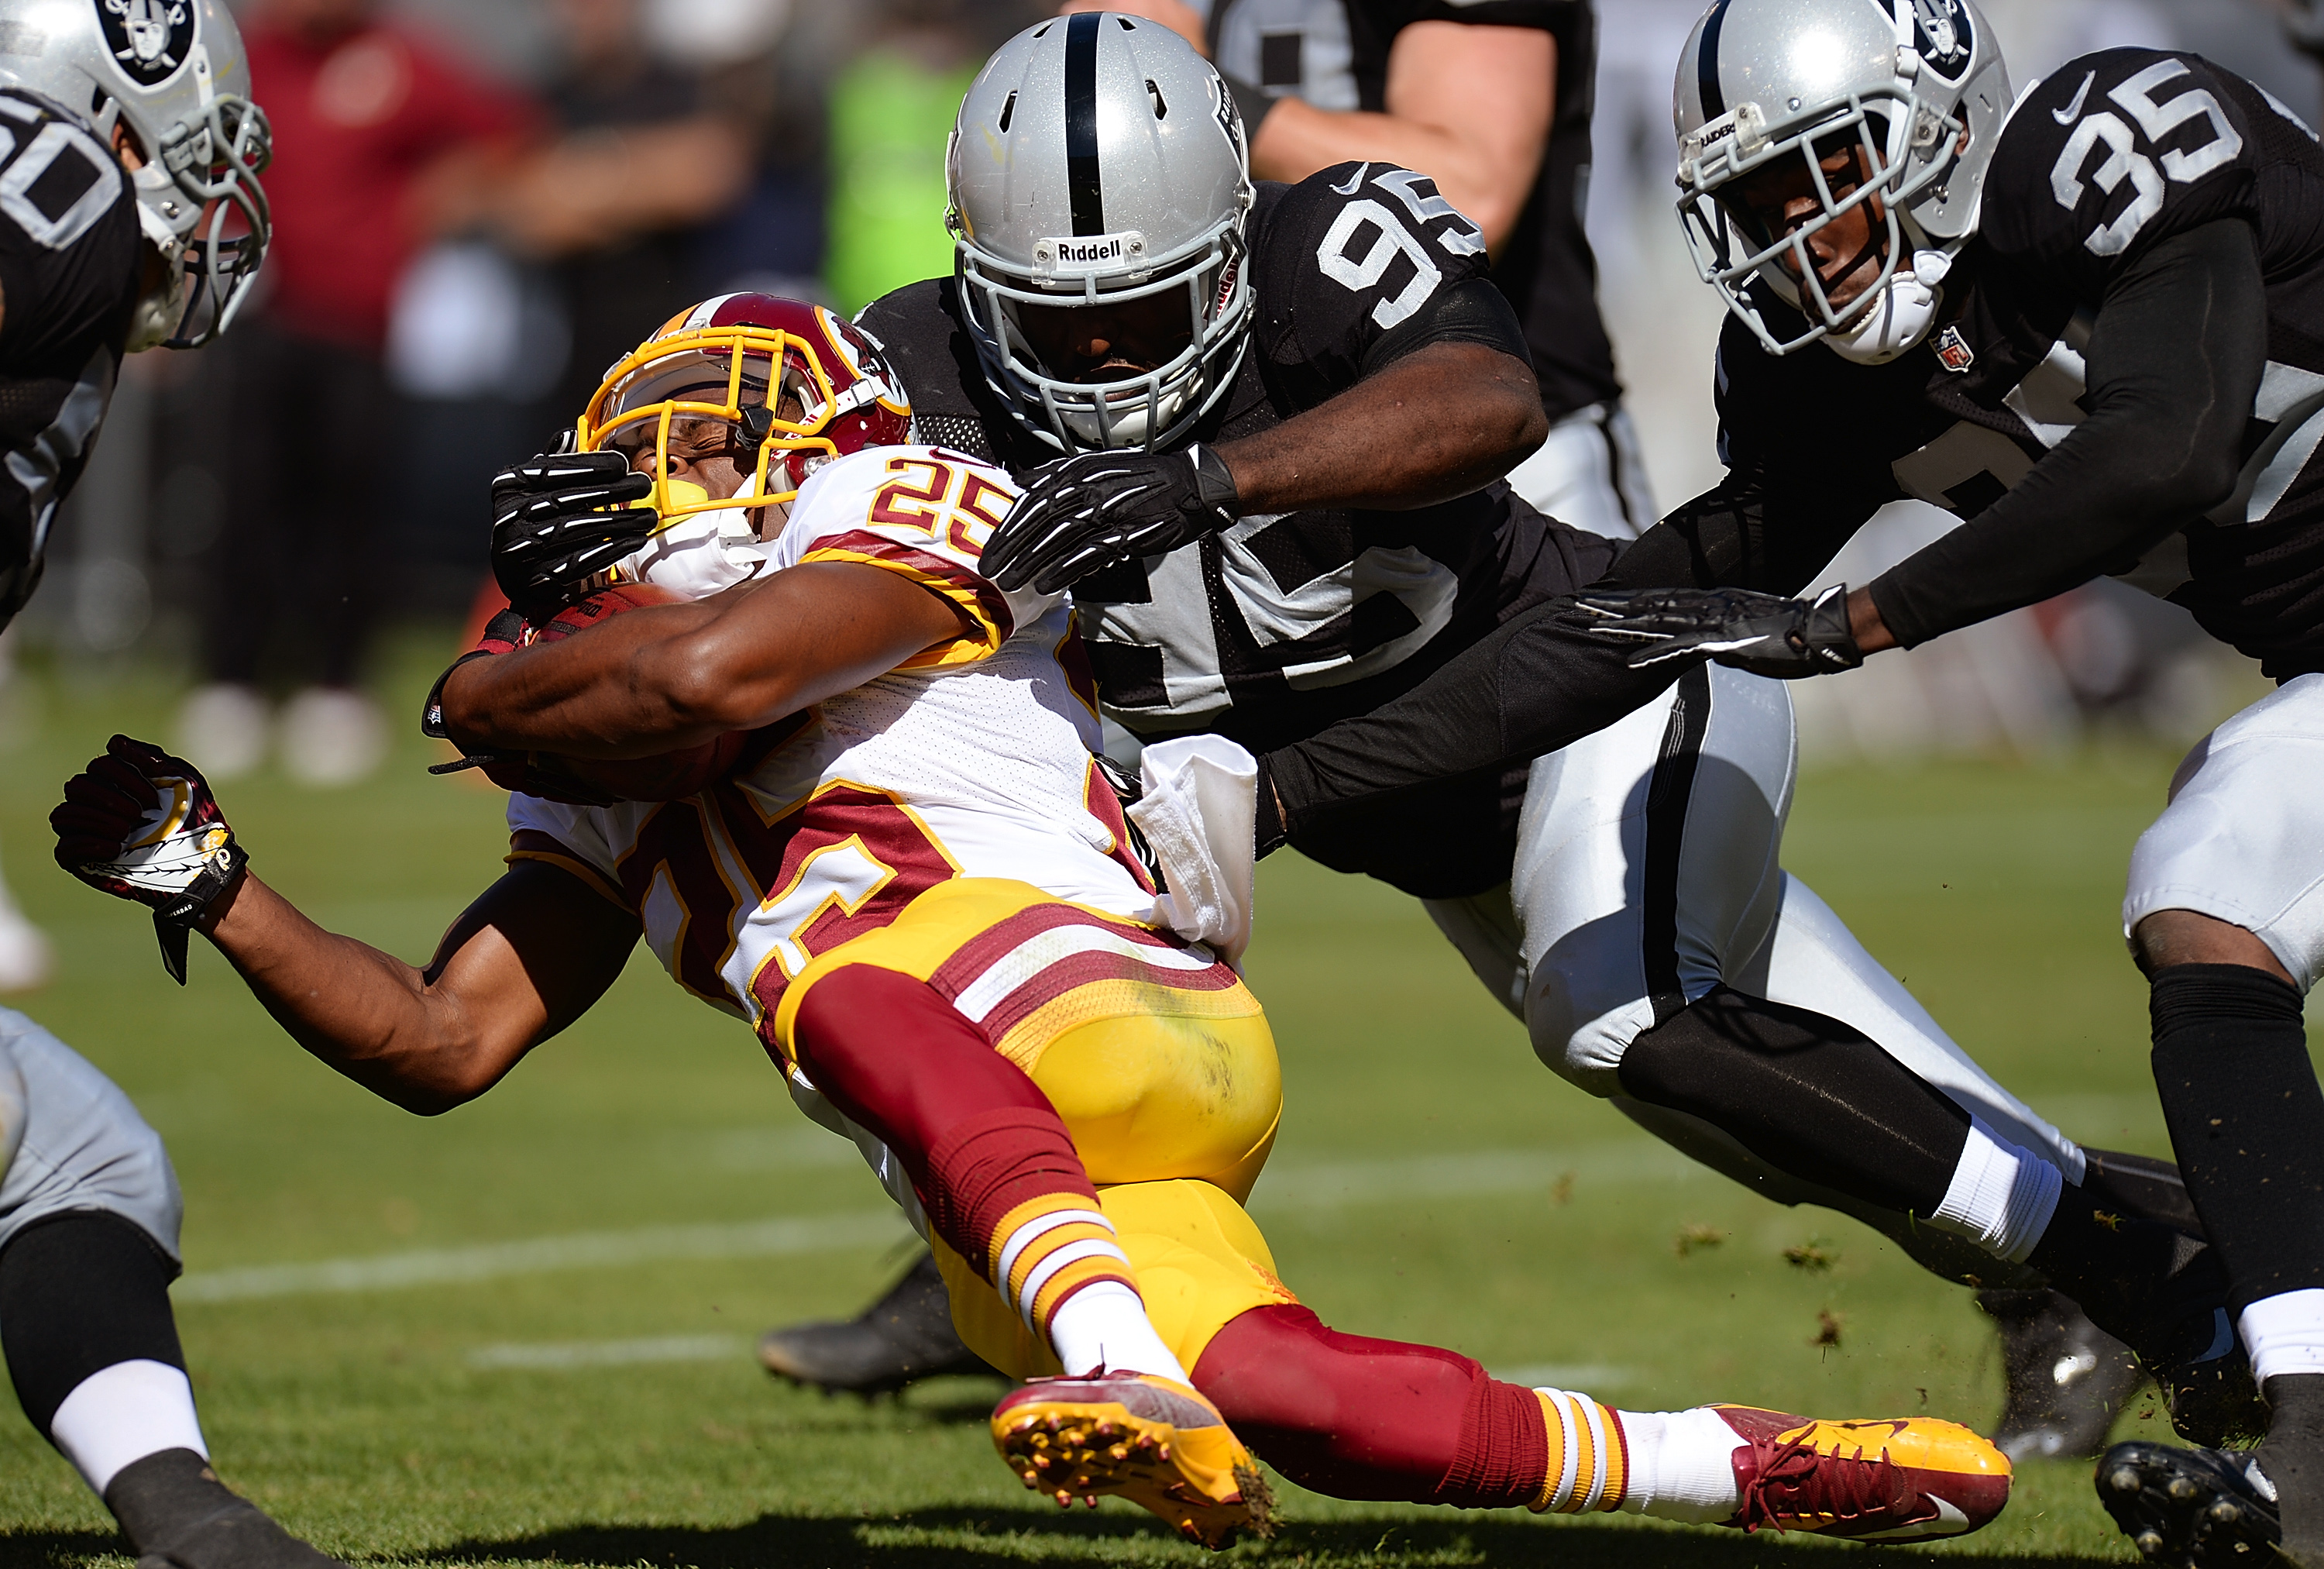 Best and worst moments from the Redskins-Raiders game